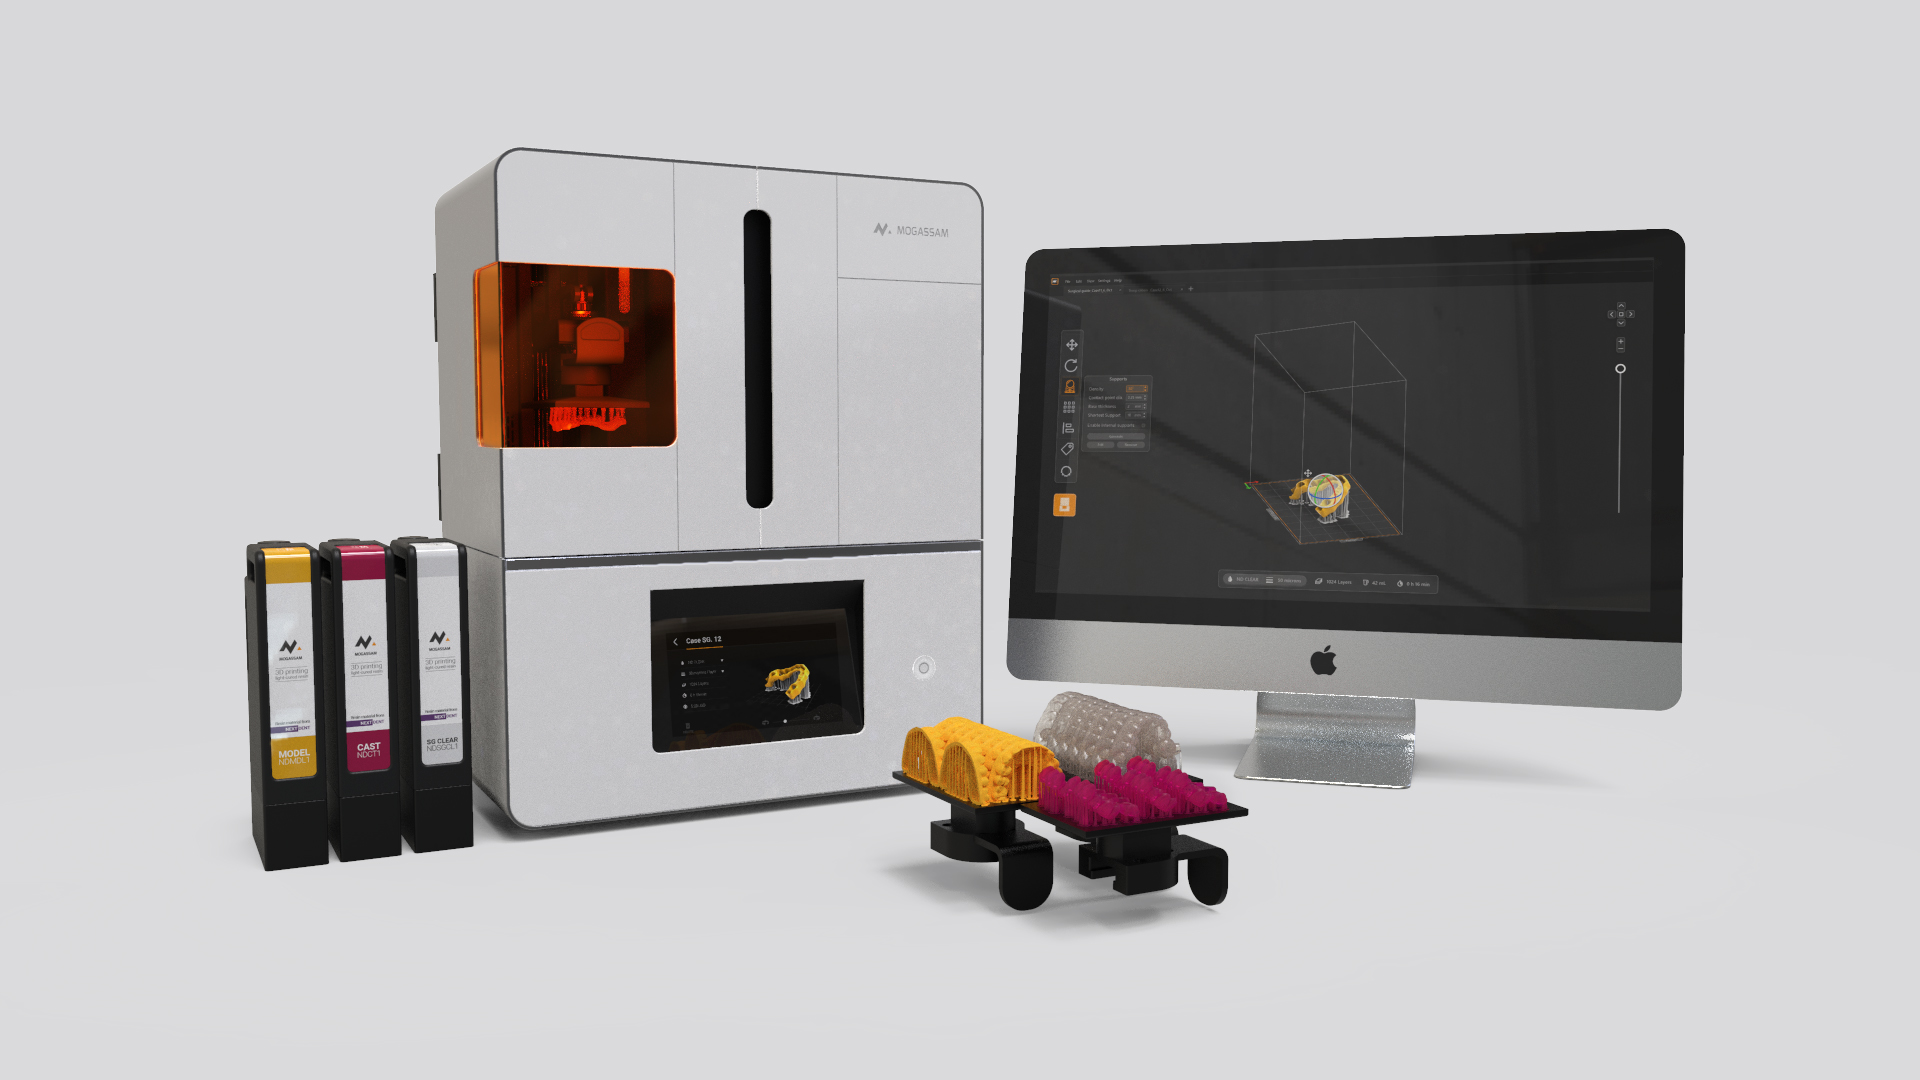 The DentCase 3D printer offers a complete dental printing workflow. Image via Mogassam.